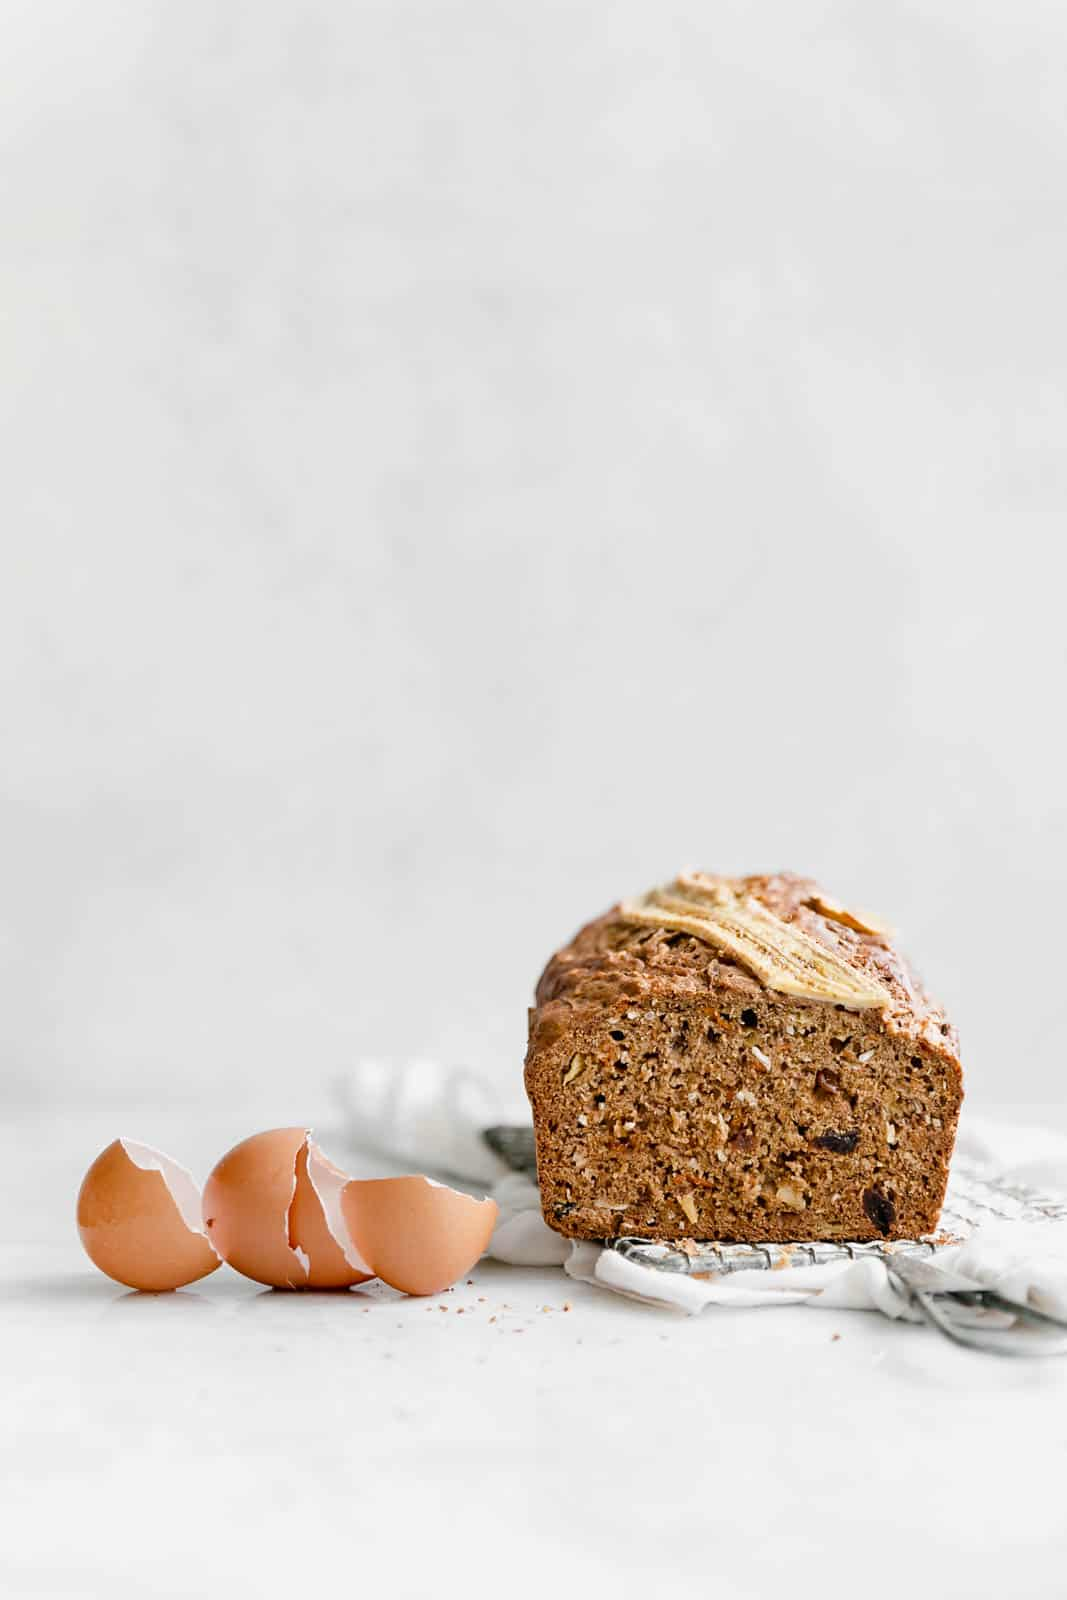 A super moist Carrot Cake Banana Bread made with coconut, carrots, cinnamon, and banana. Perfect for breakfast, snack, or dessert!